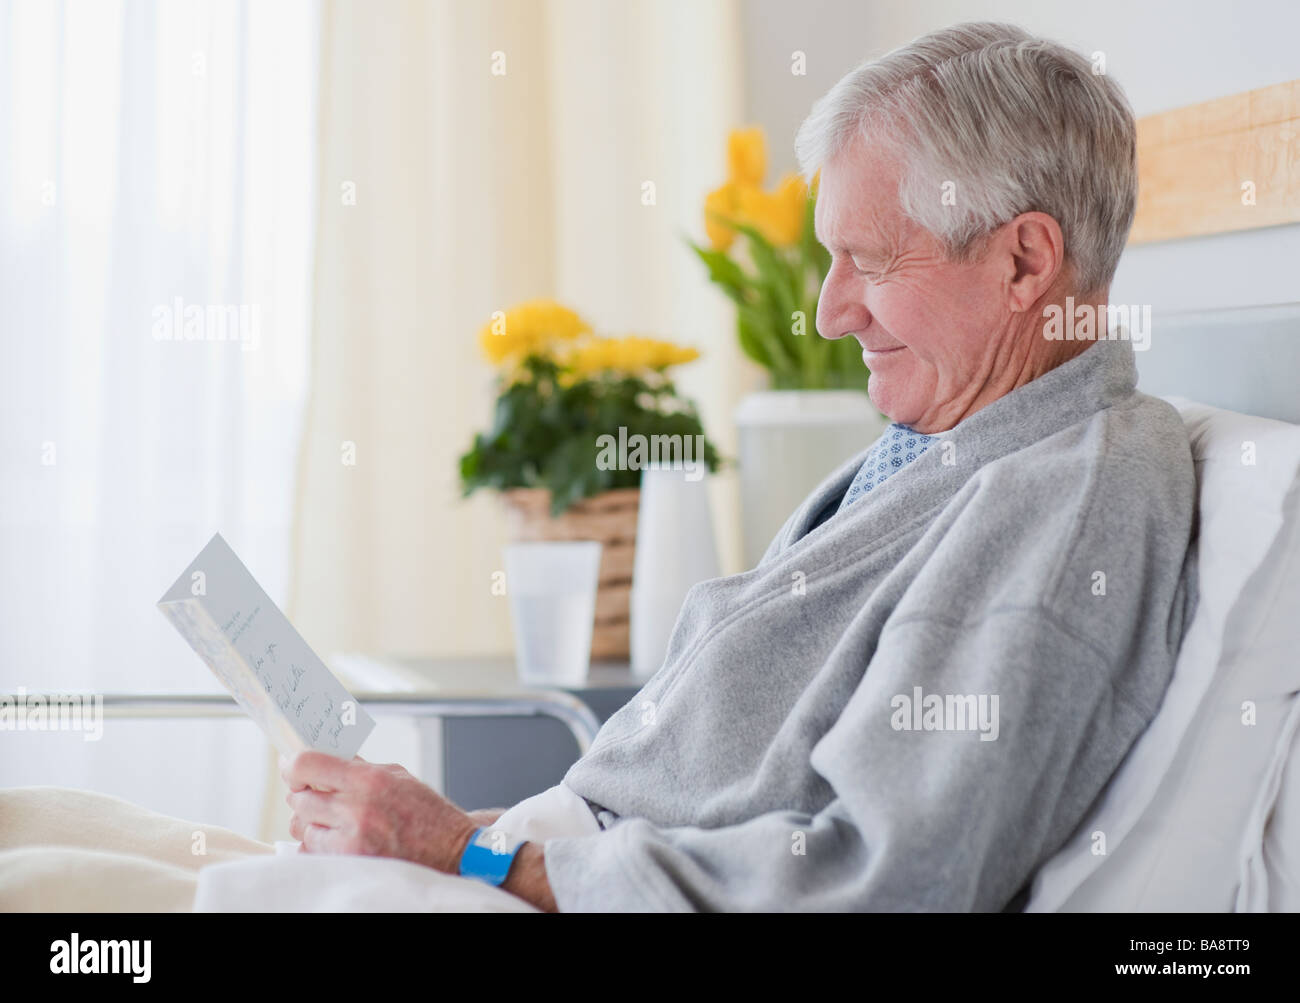 Senior man reading get well card in hospital Stock Photo